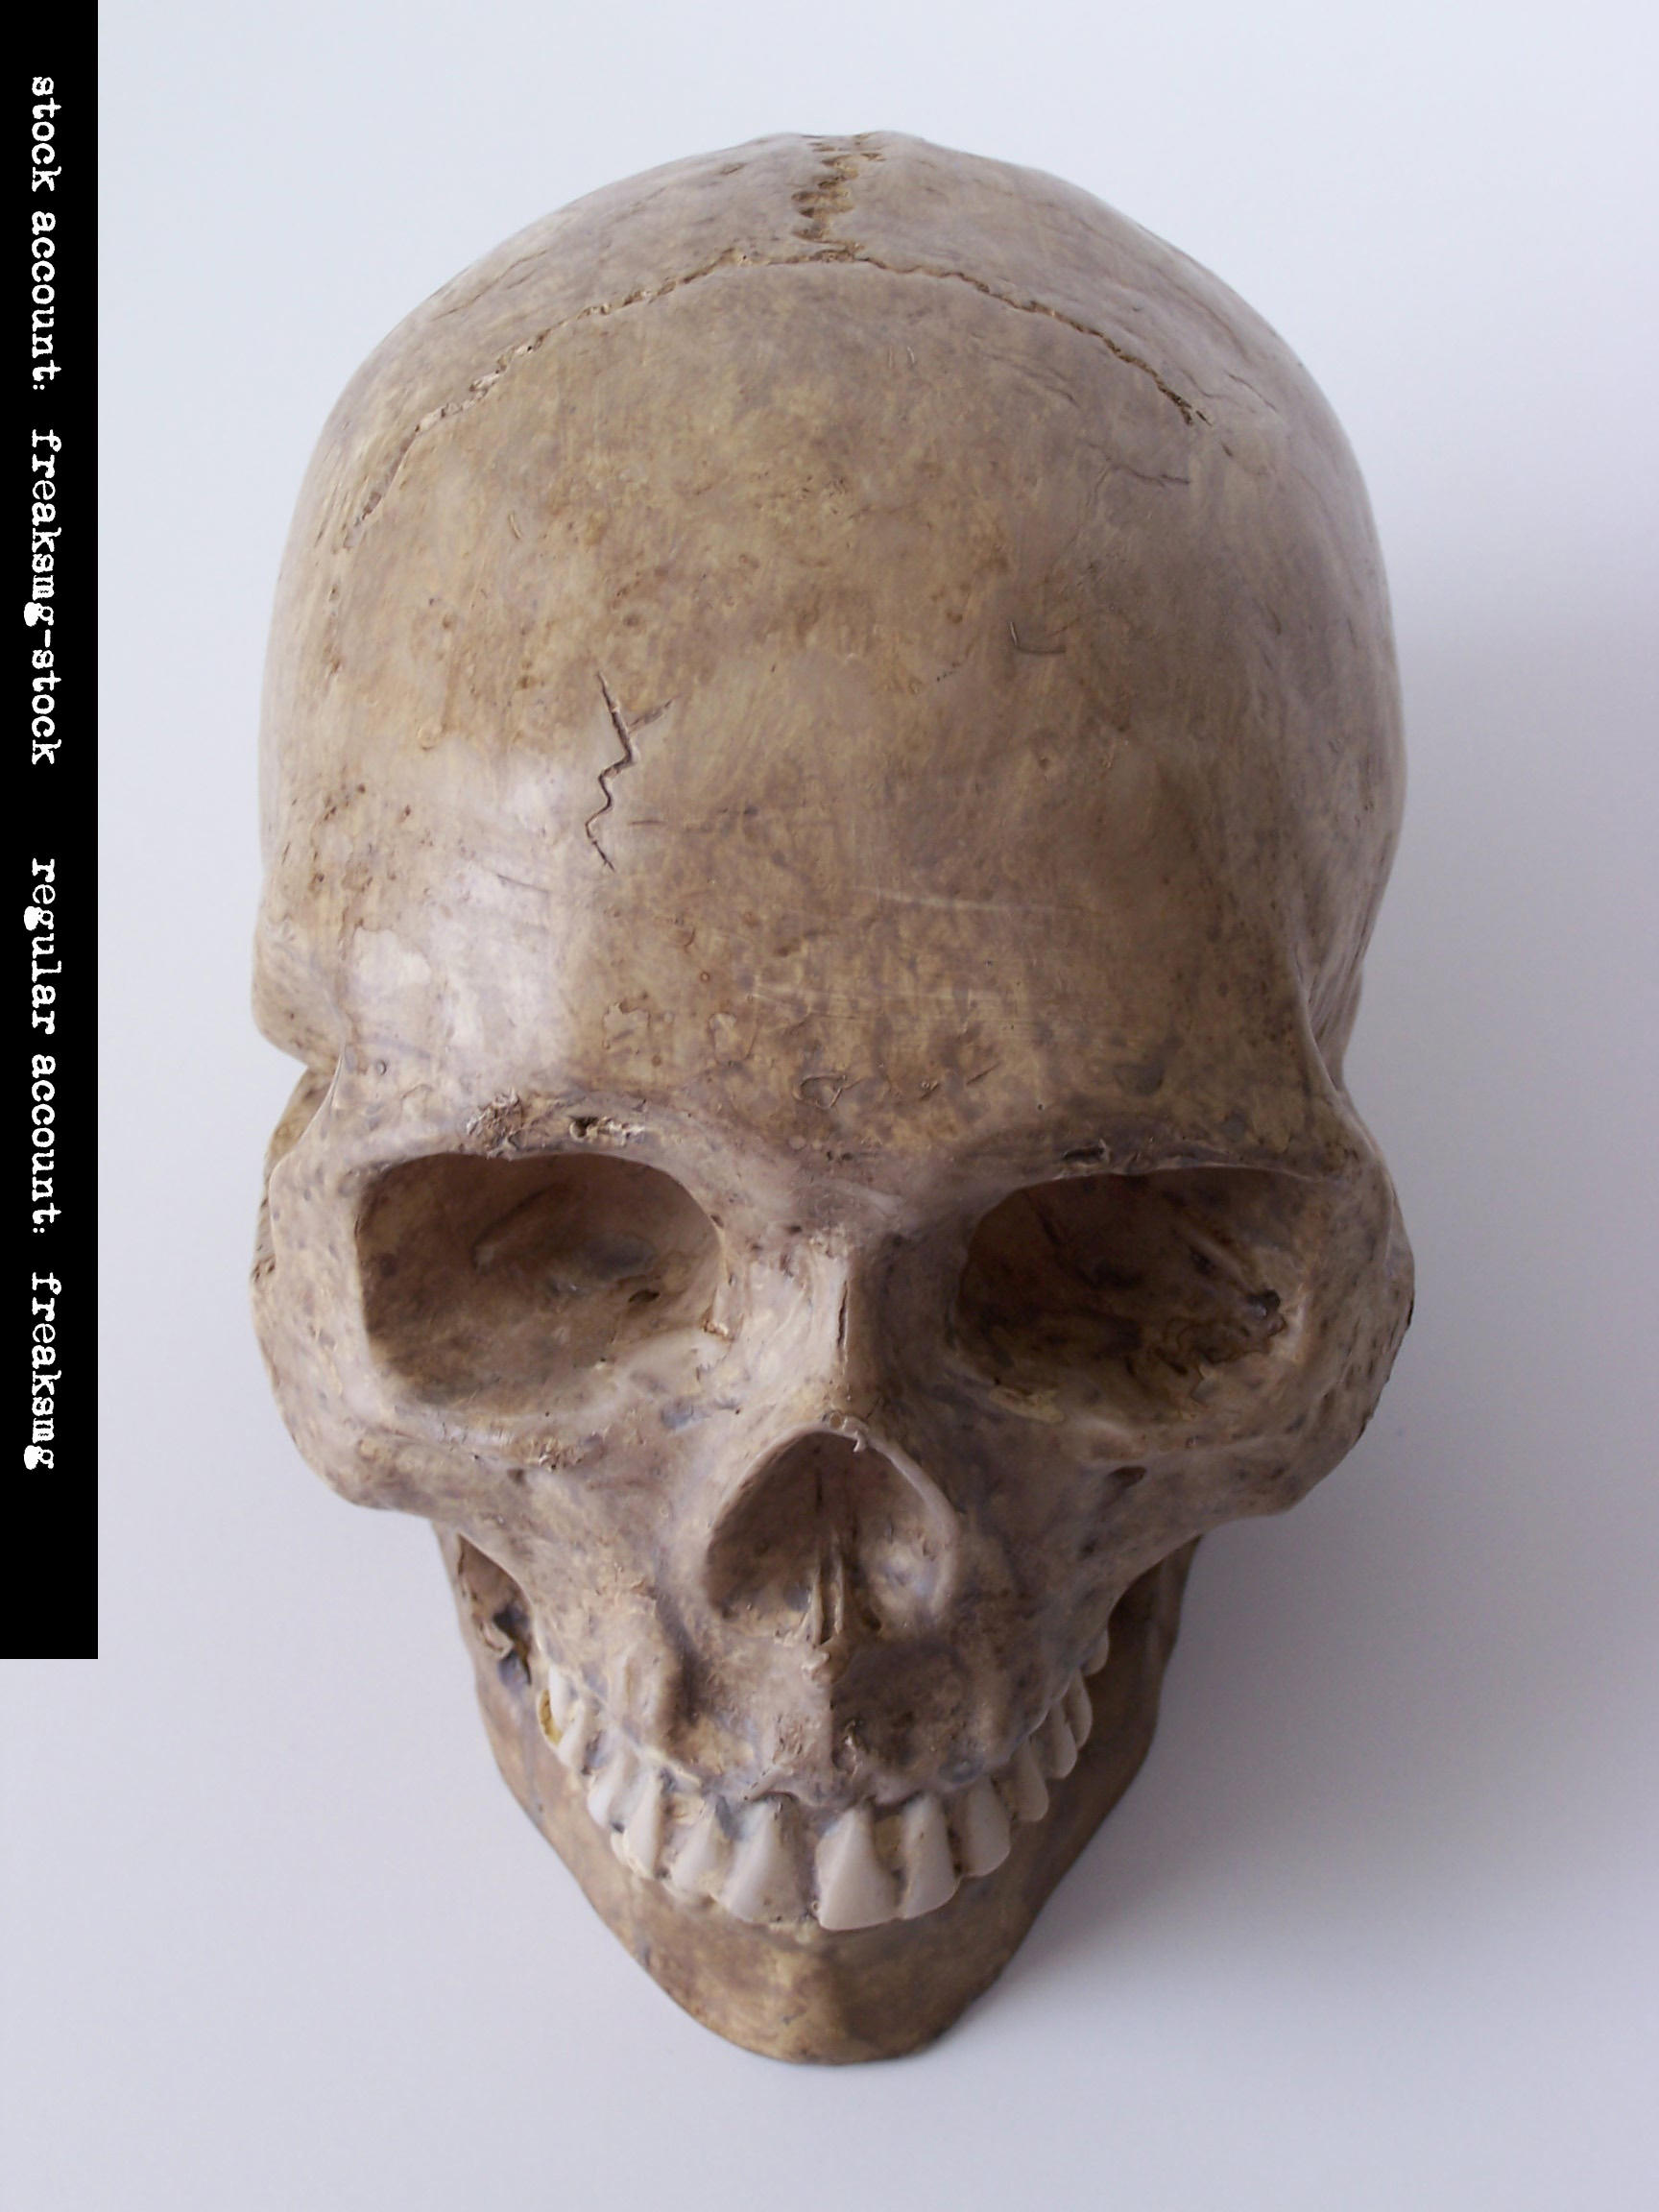 freaksmg-stock - new skull 4 by freaksmg-stock